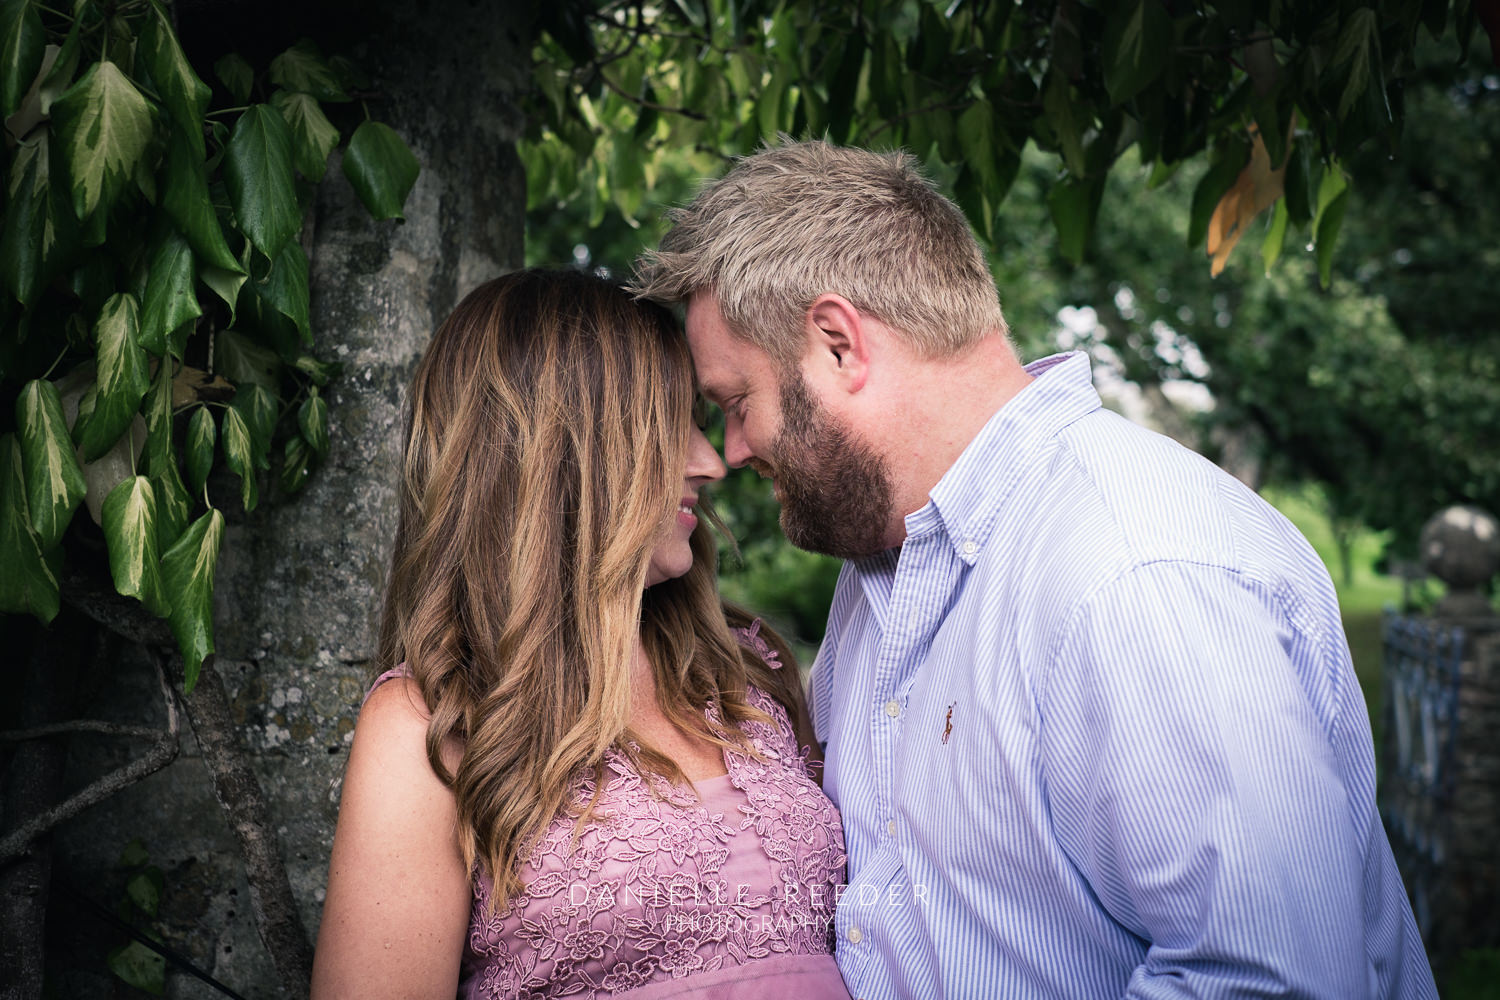 Couple looking lovingly at each other during maternity photoshoot